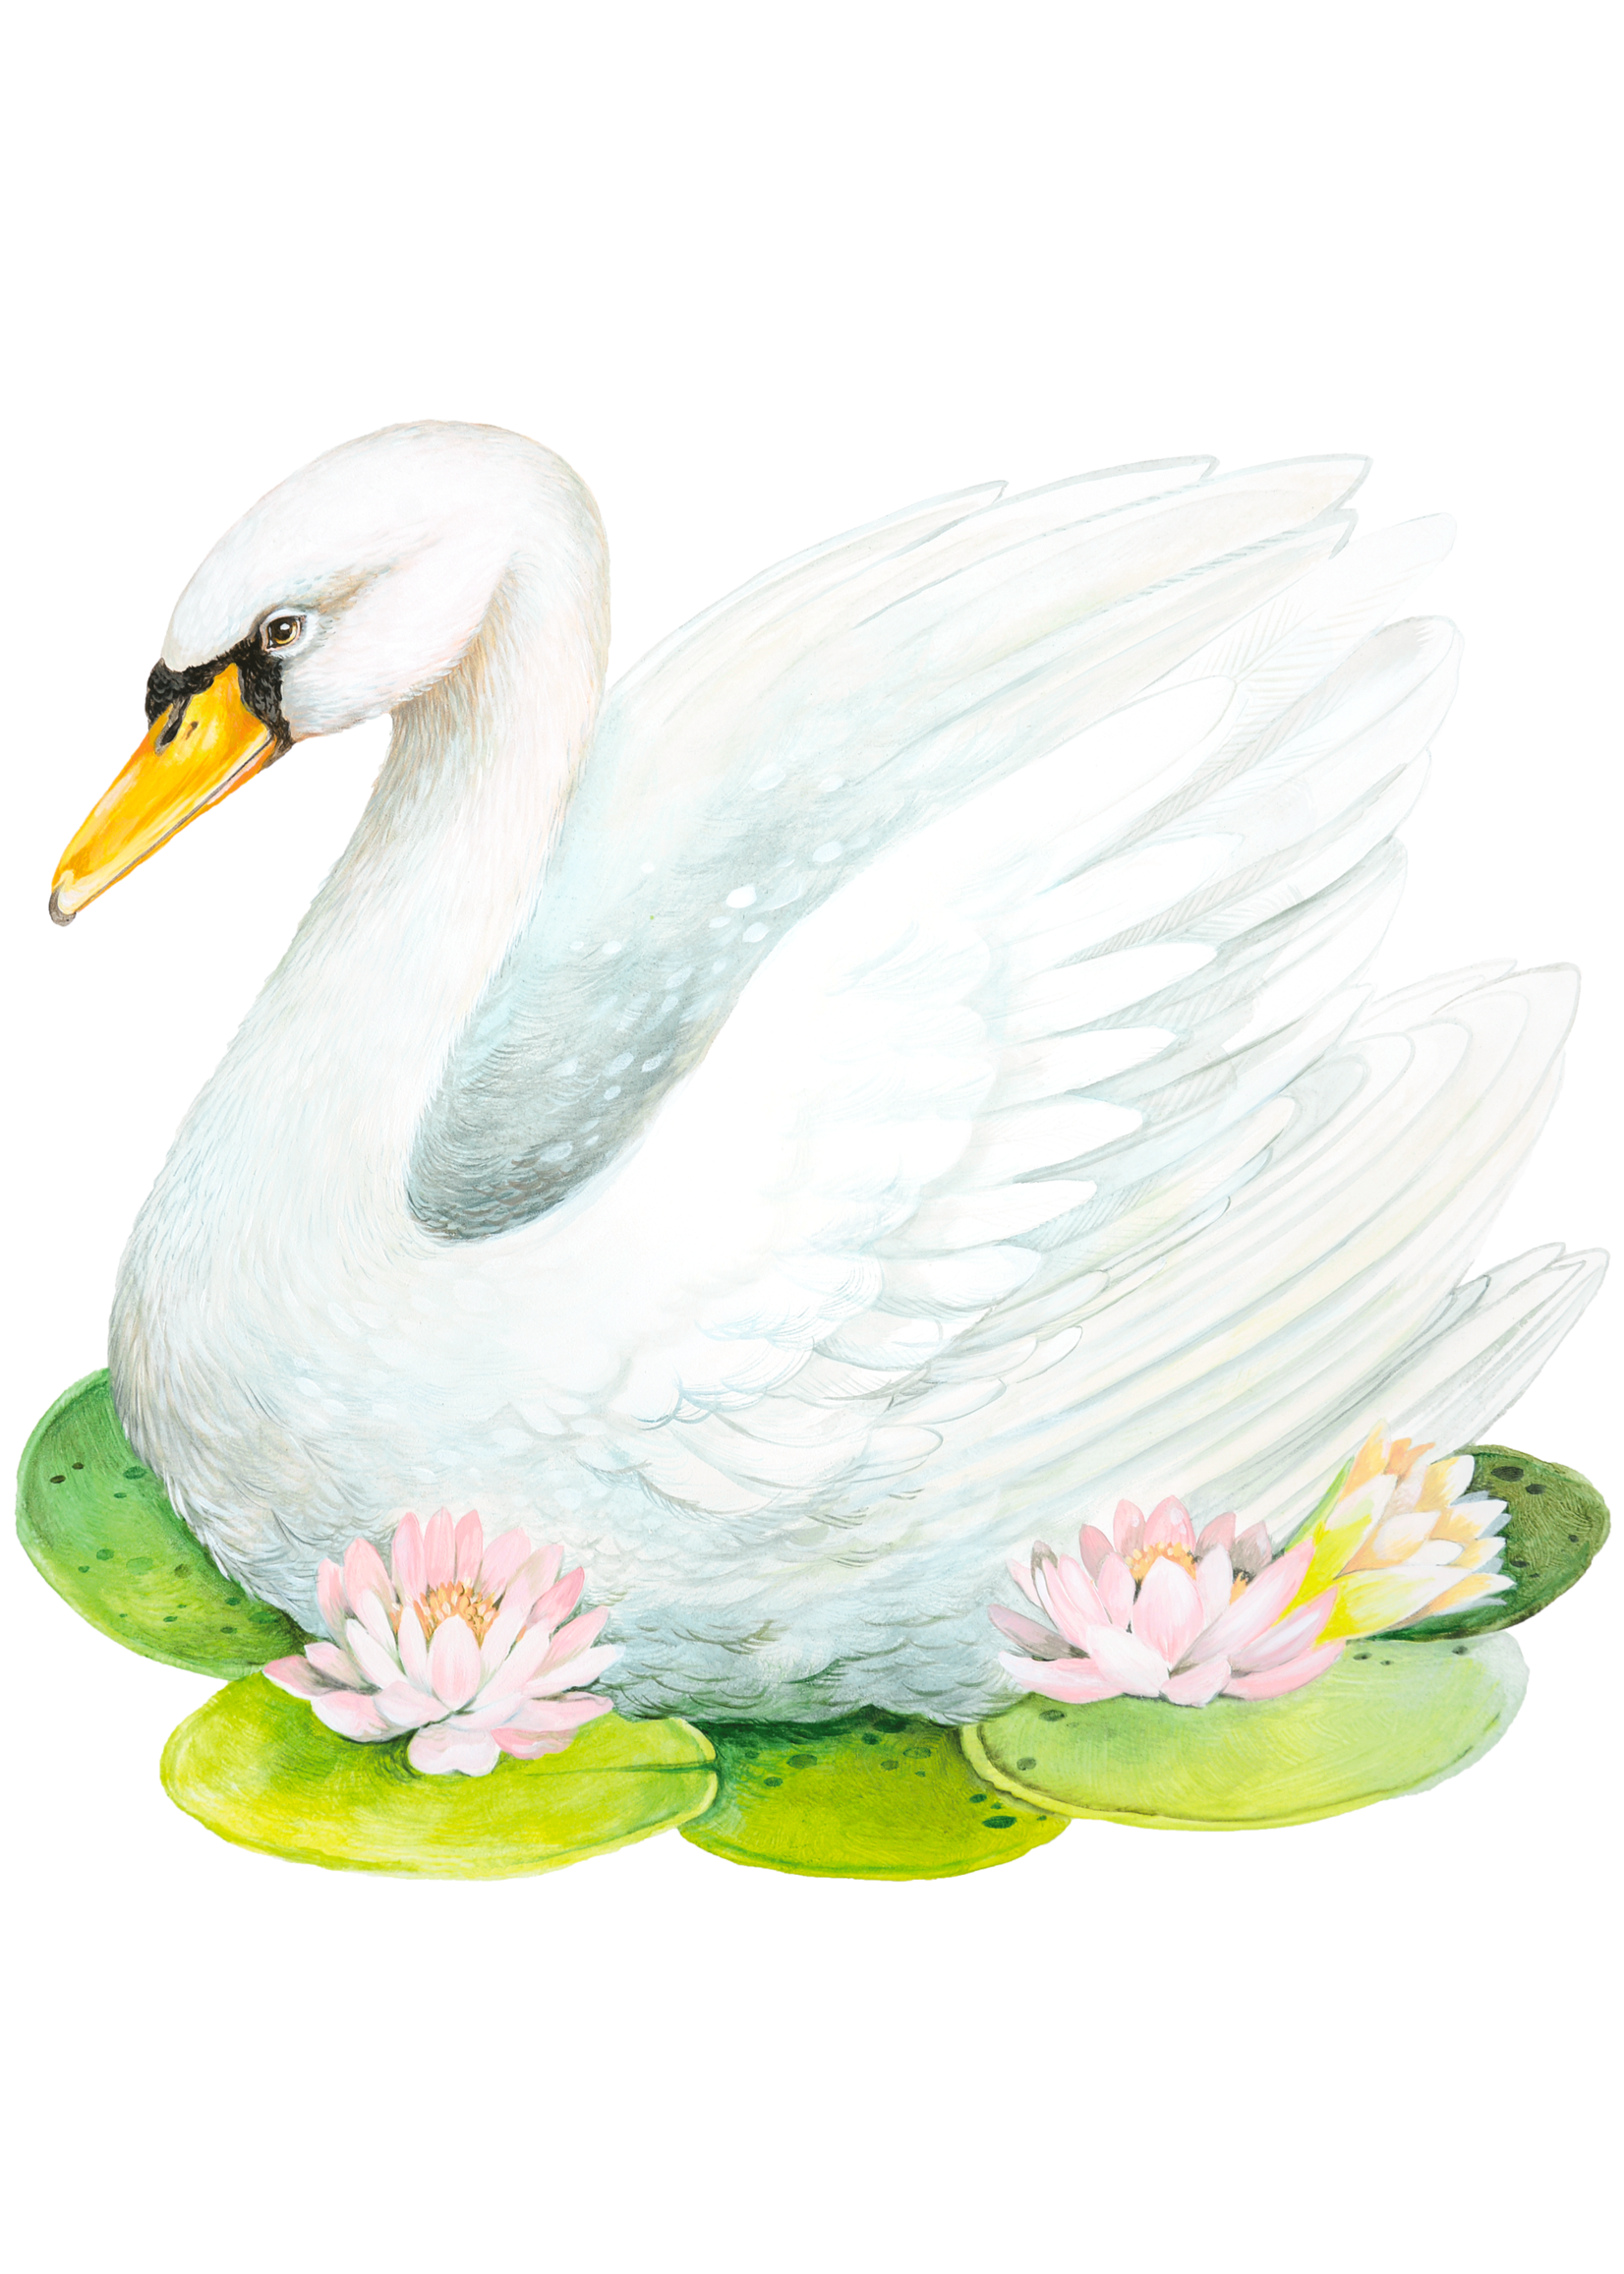 Hester & Cook Paper Placemats - Fabulous Swan (12 sheets)